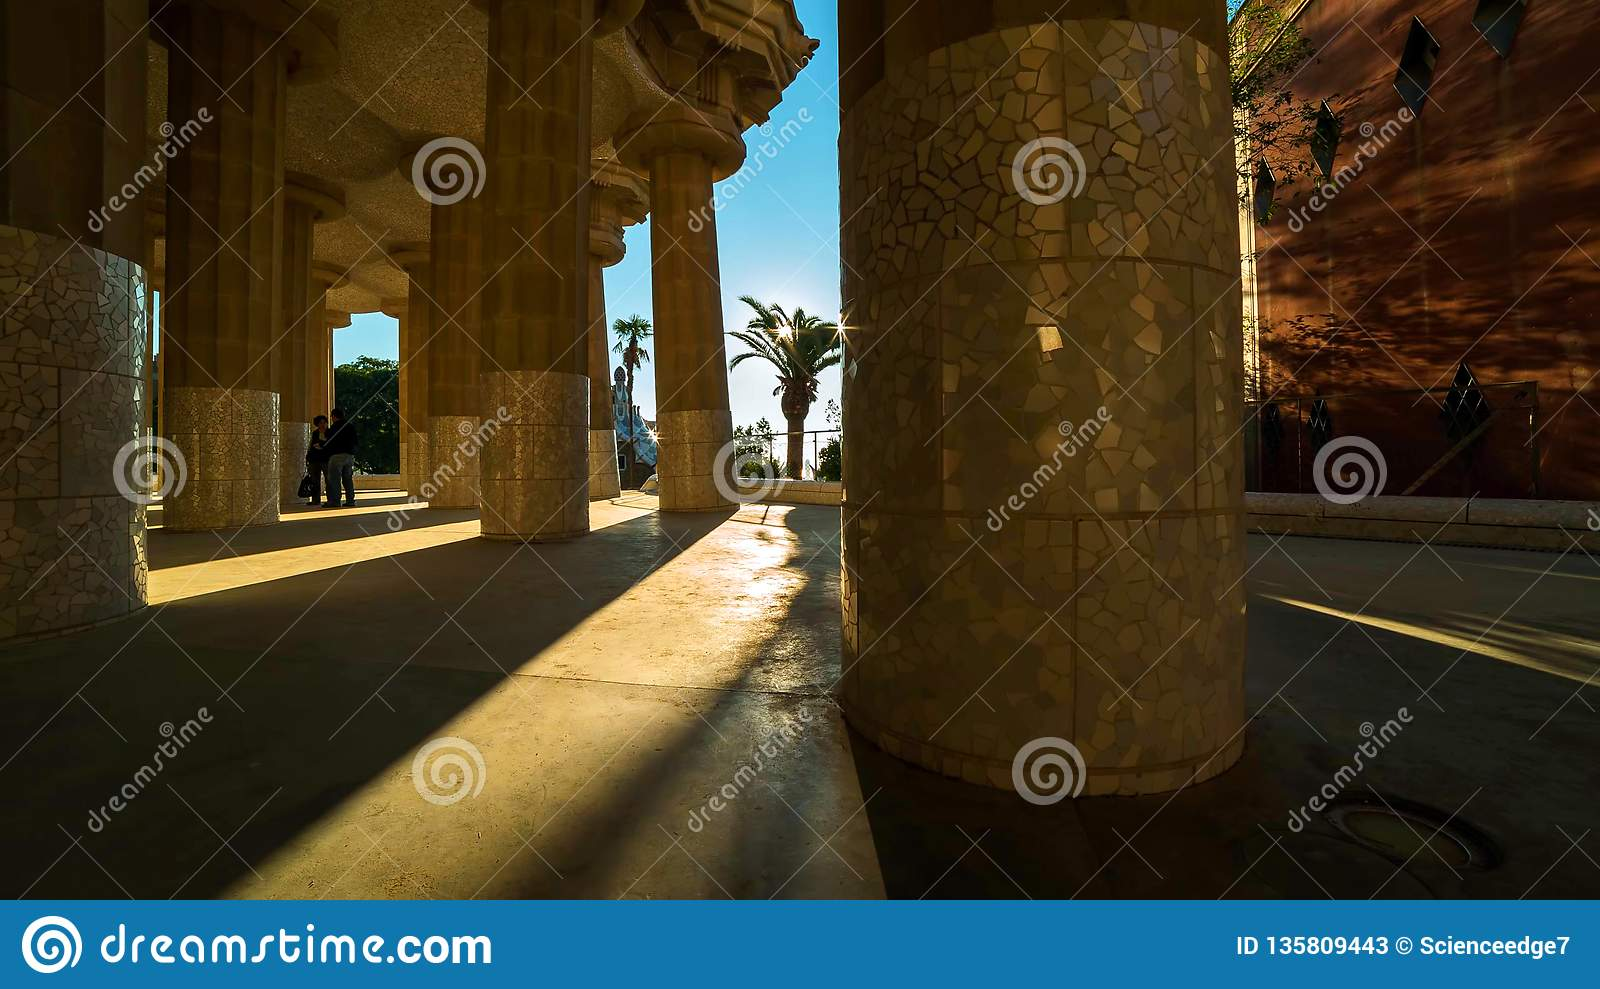 Barcelona is the capital and largest city of Catalonia, as well as the second most populous municipality of Spain